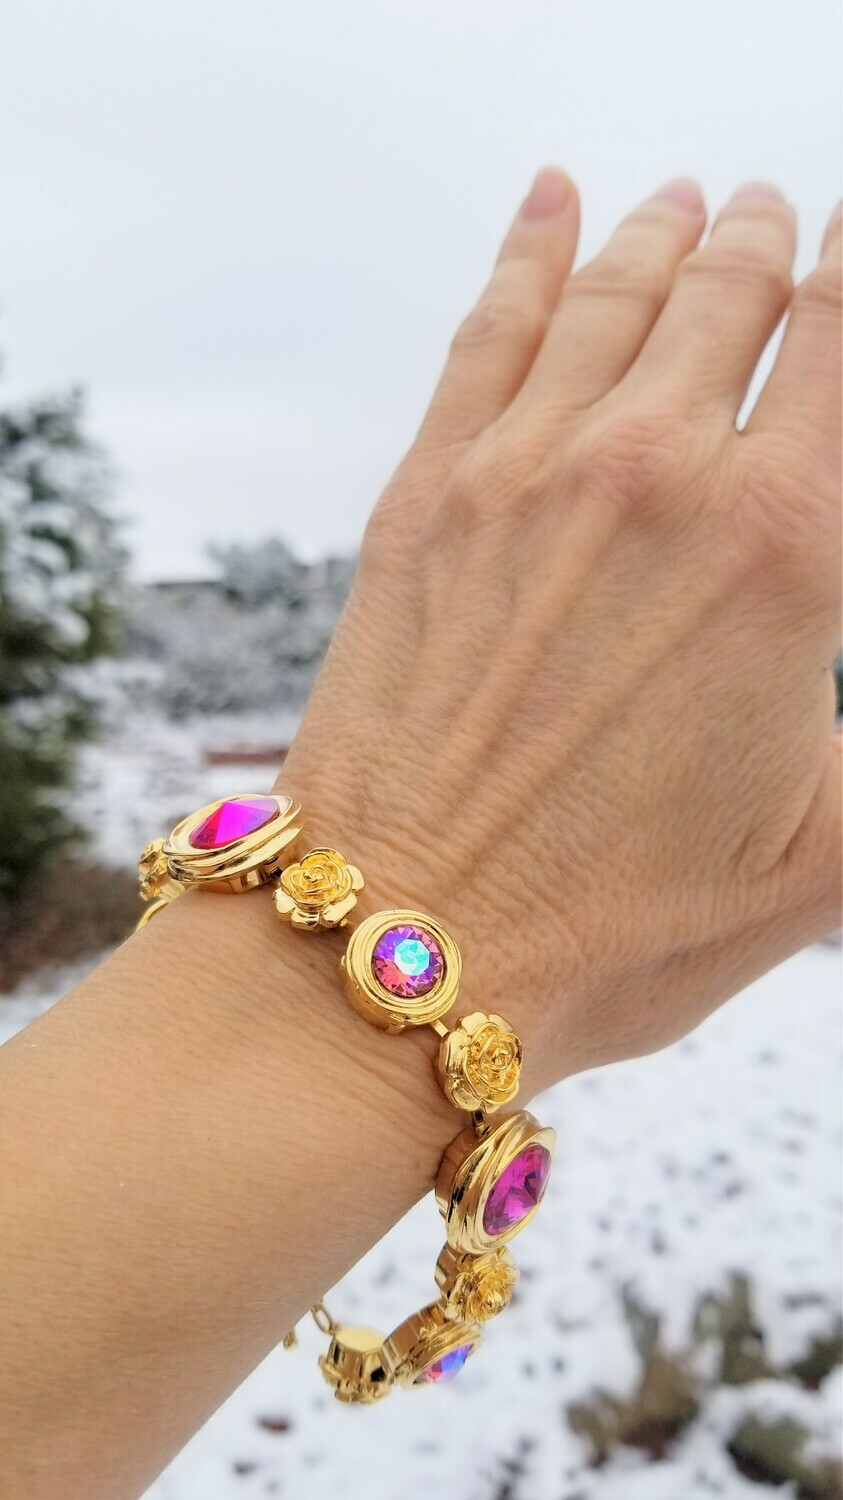 Gorgeous Gold Rose Ray Soul Portal Bracelet/Devic Crystal LOVE Bracelet 188/255.00 Sister Rose Retreat Sale